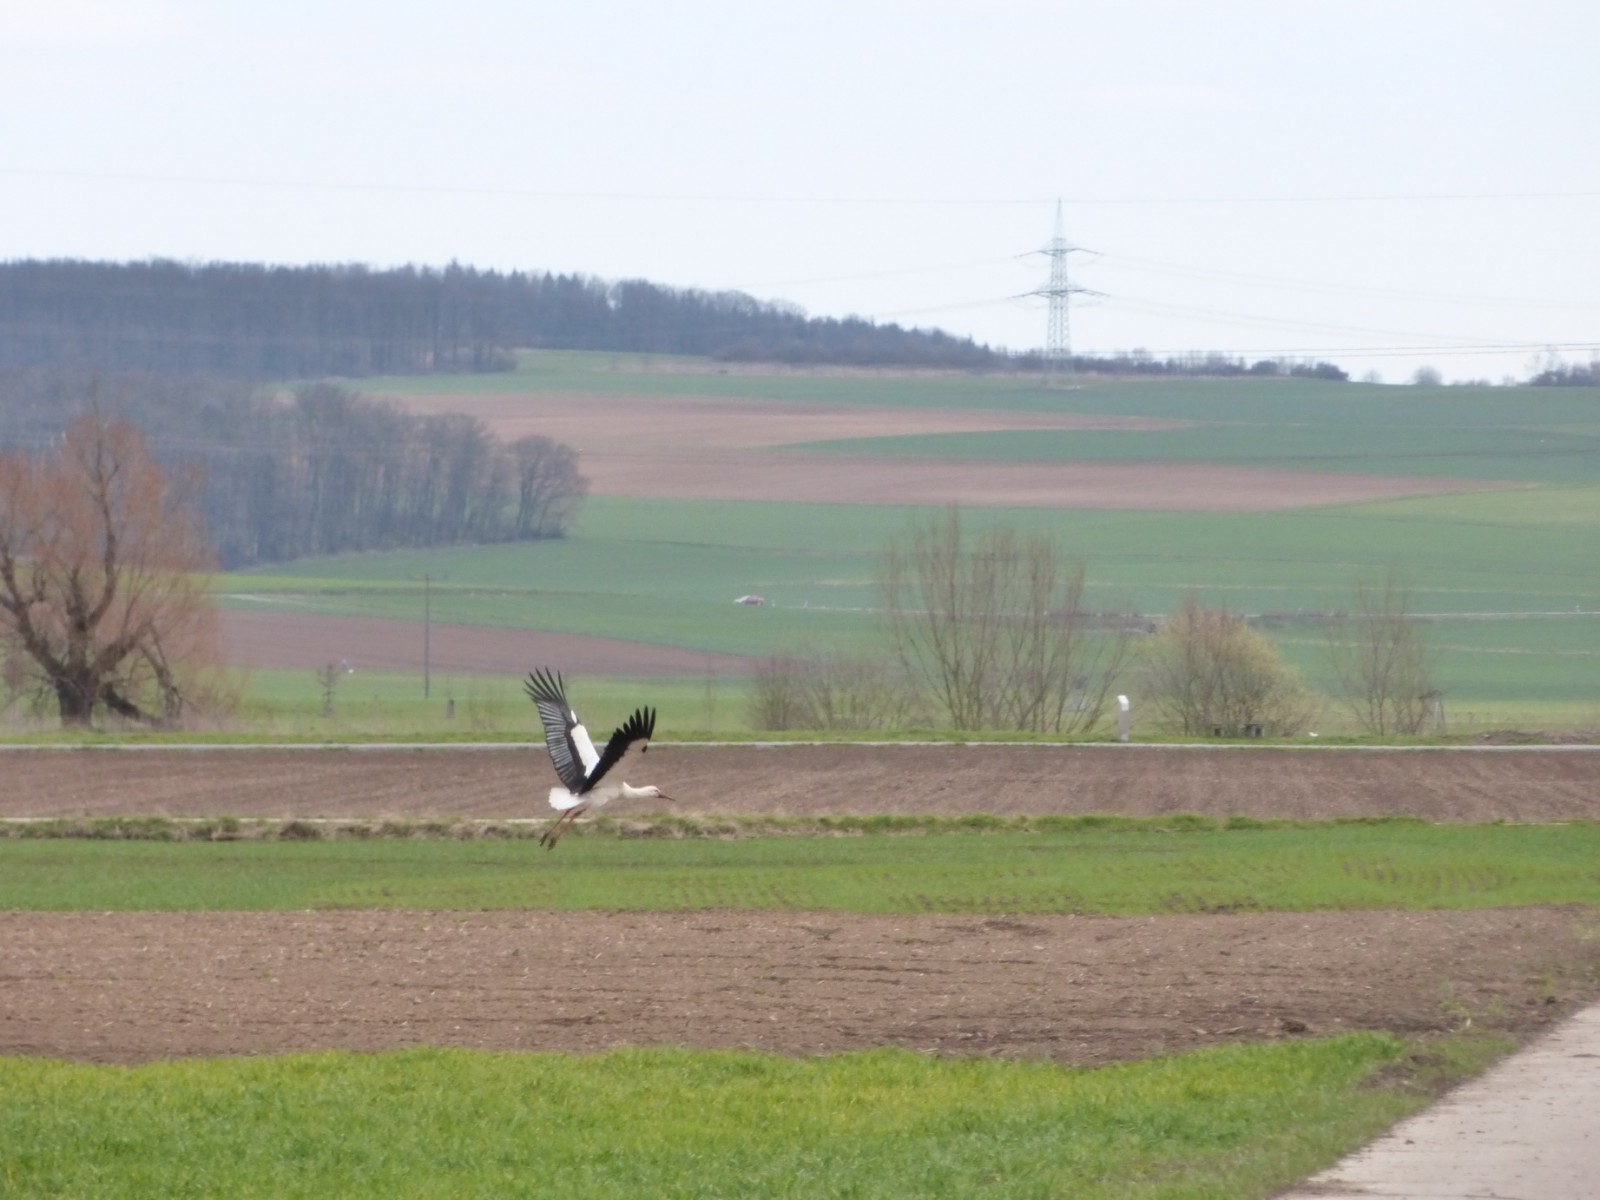 0416 Storch 2